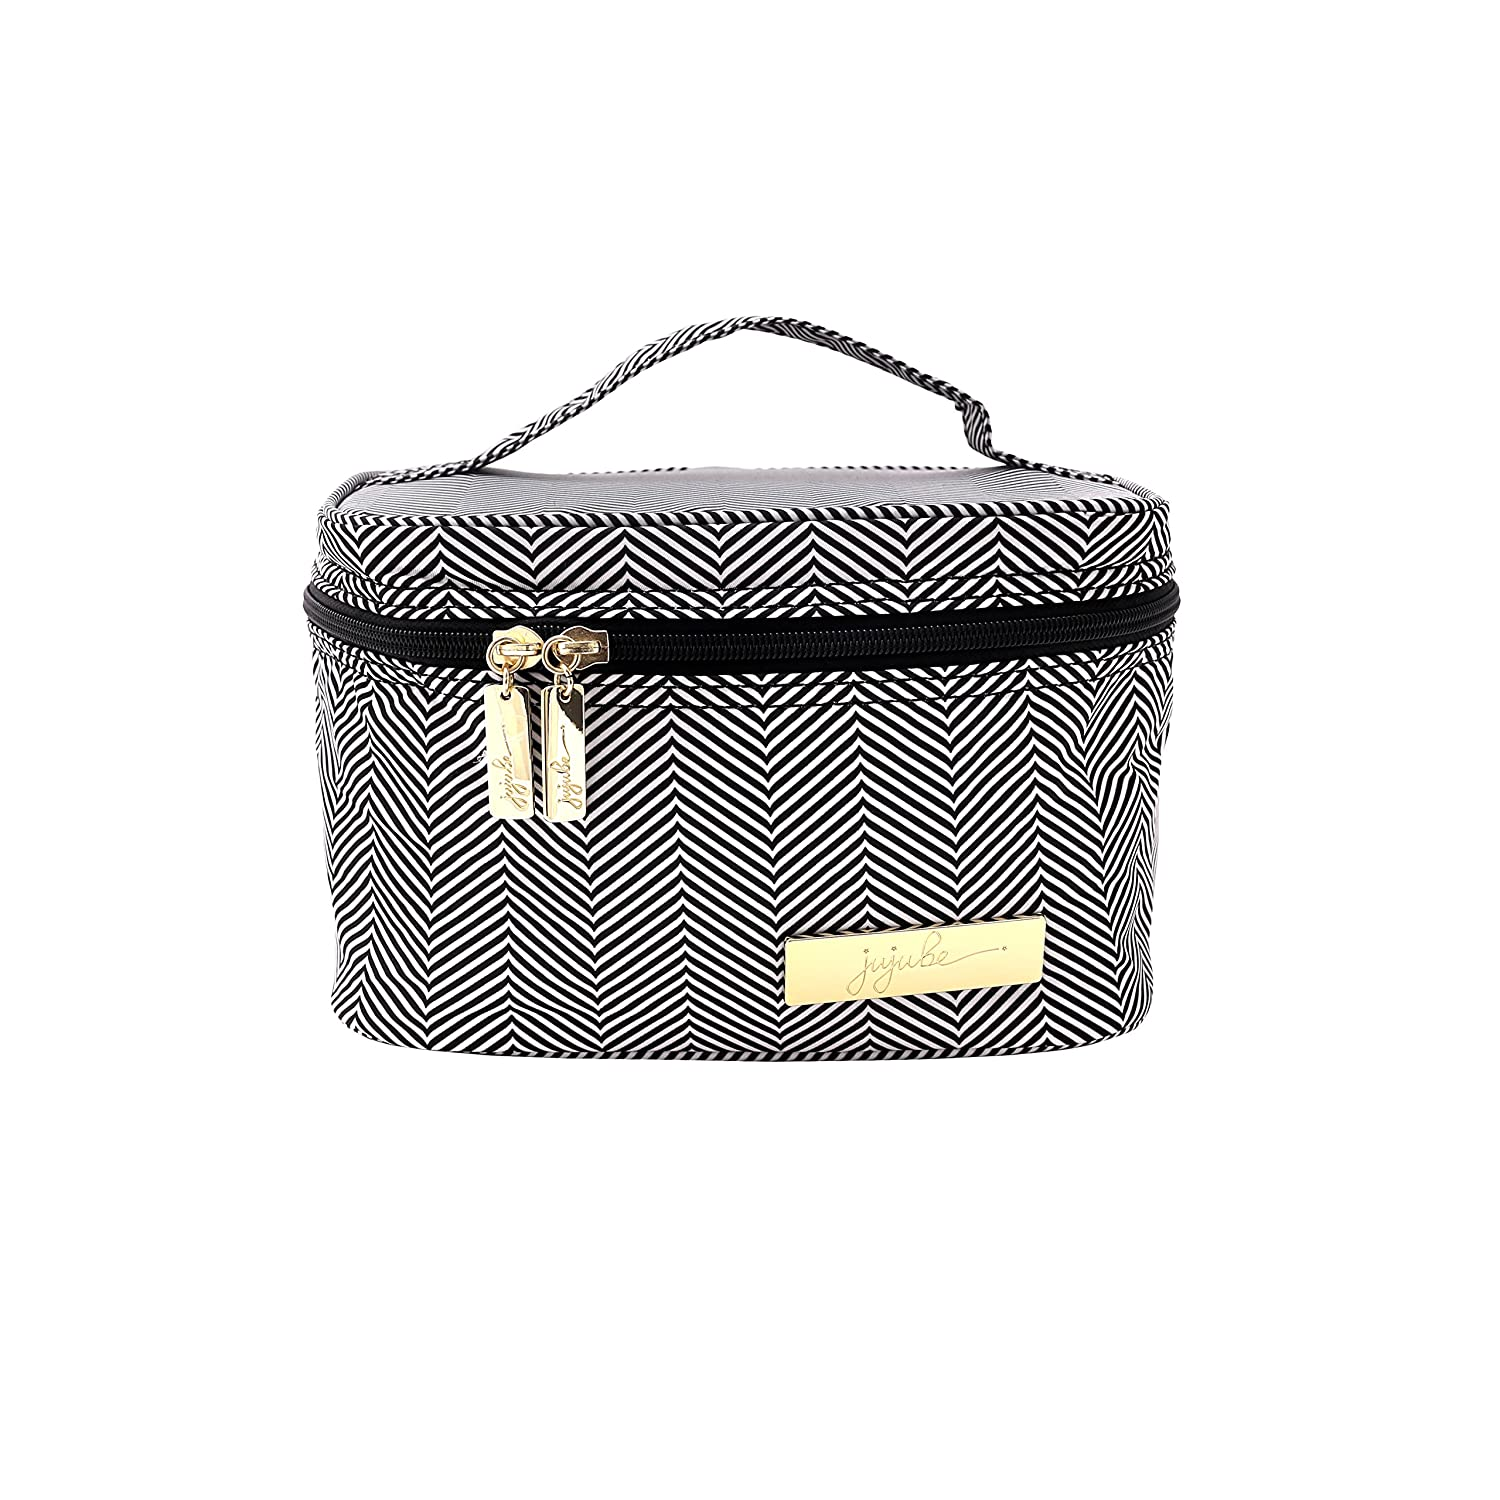 JuJuBe Travel Make-Up Cosmetic Bag Legacy Collection, Be Ready The Queen of The Nile – Black White Chevron